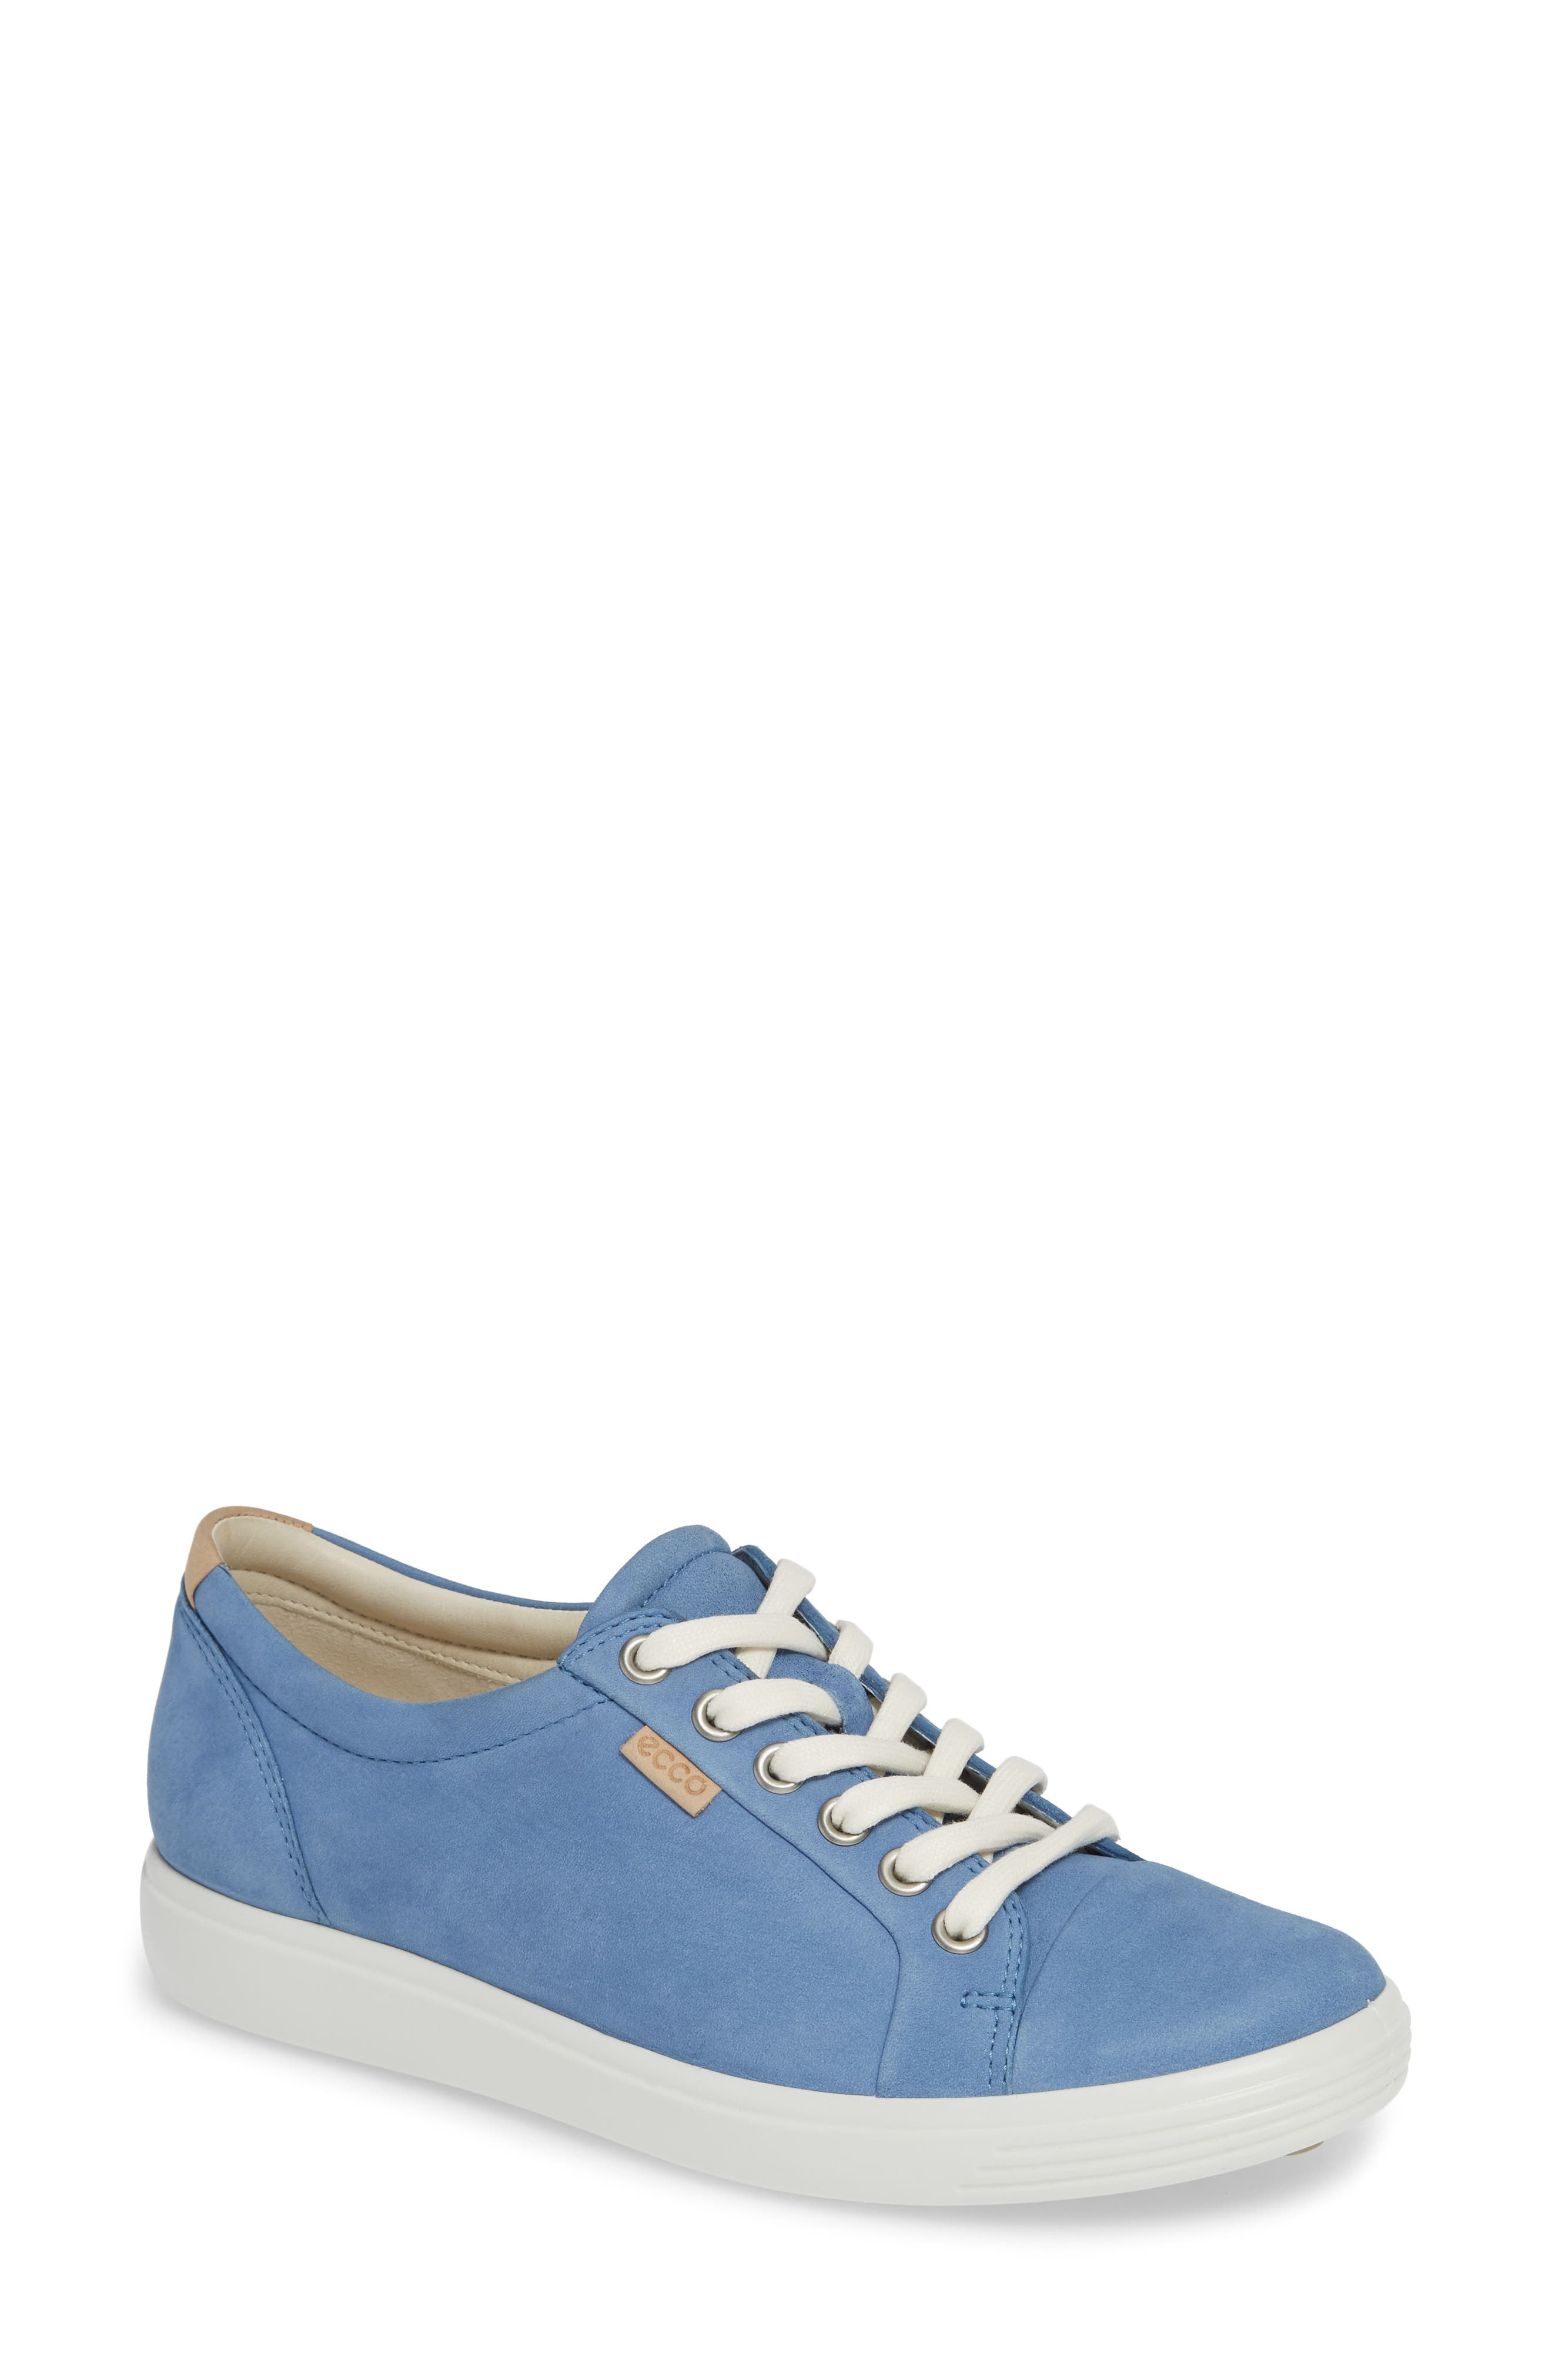 ECCO,                             Soft 7 Sneaker,                             Main thumbnail 1, color,                             RETRO BLUE LEATHER